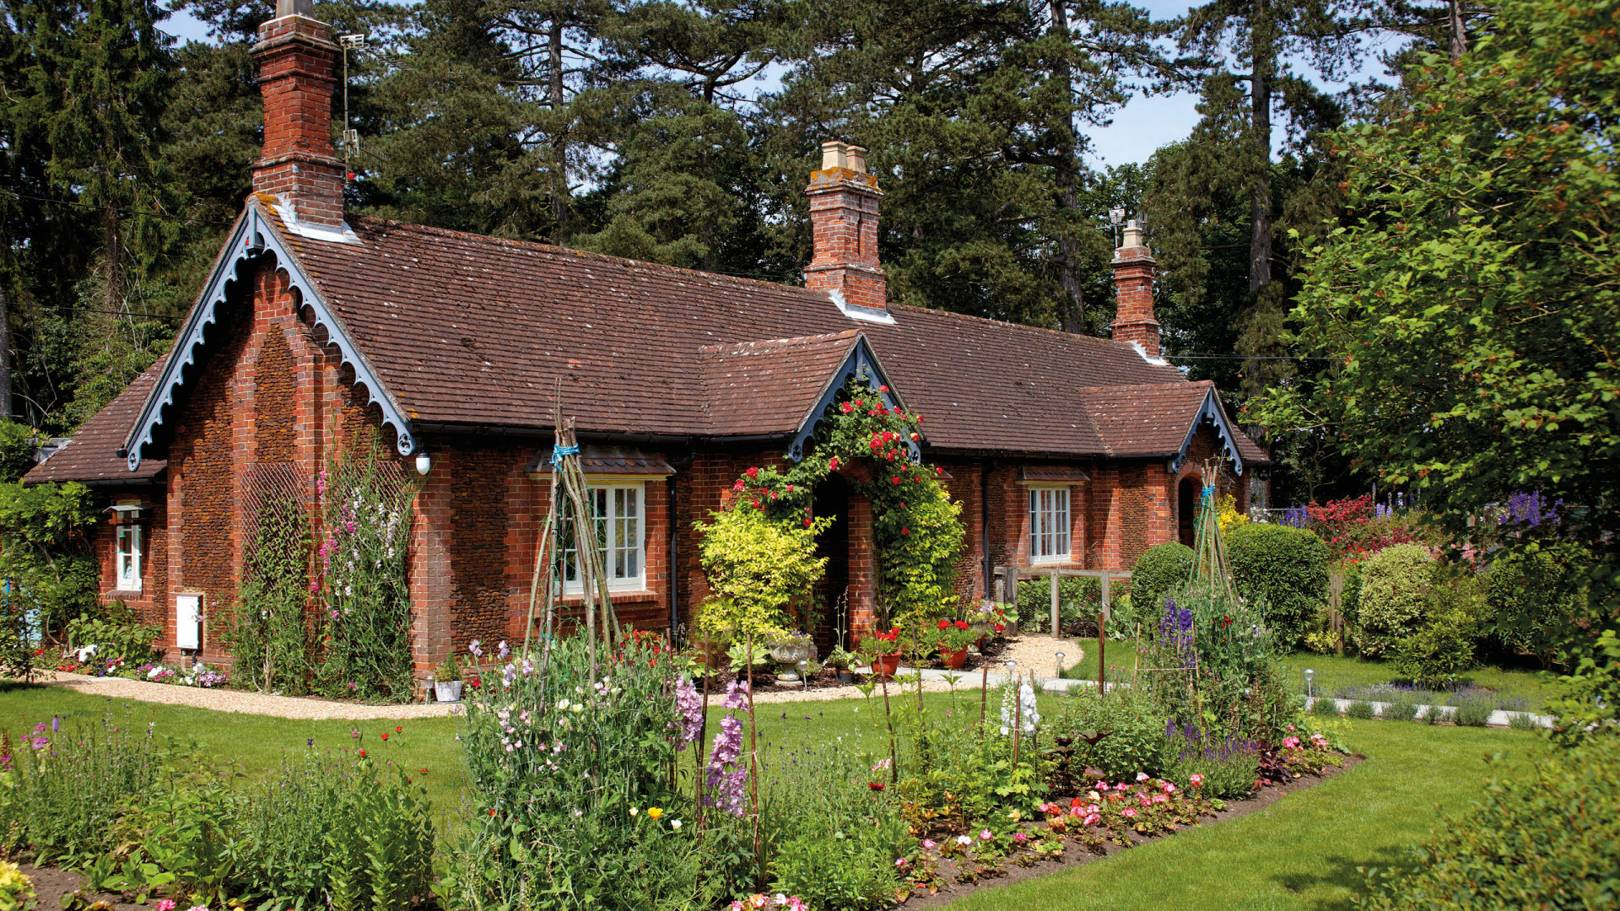 All the houses to rent on the Queen's Sandringham Estate